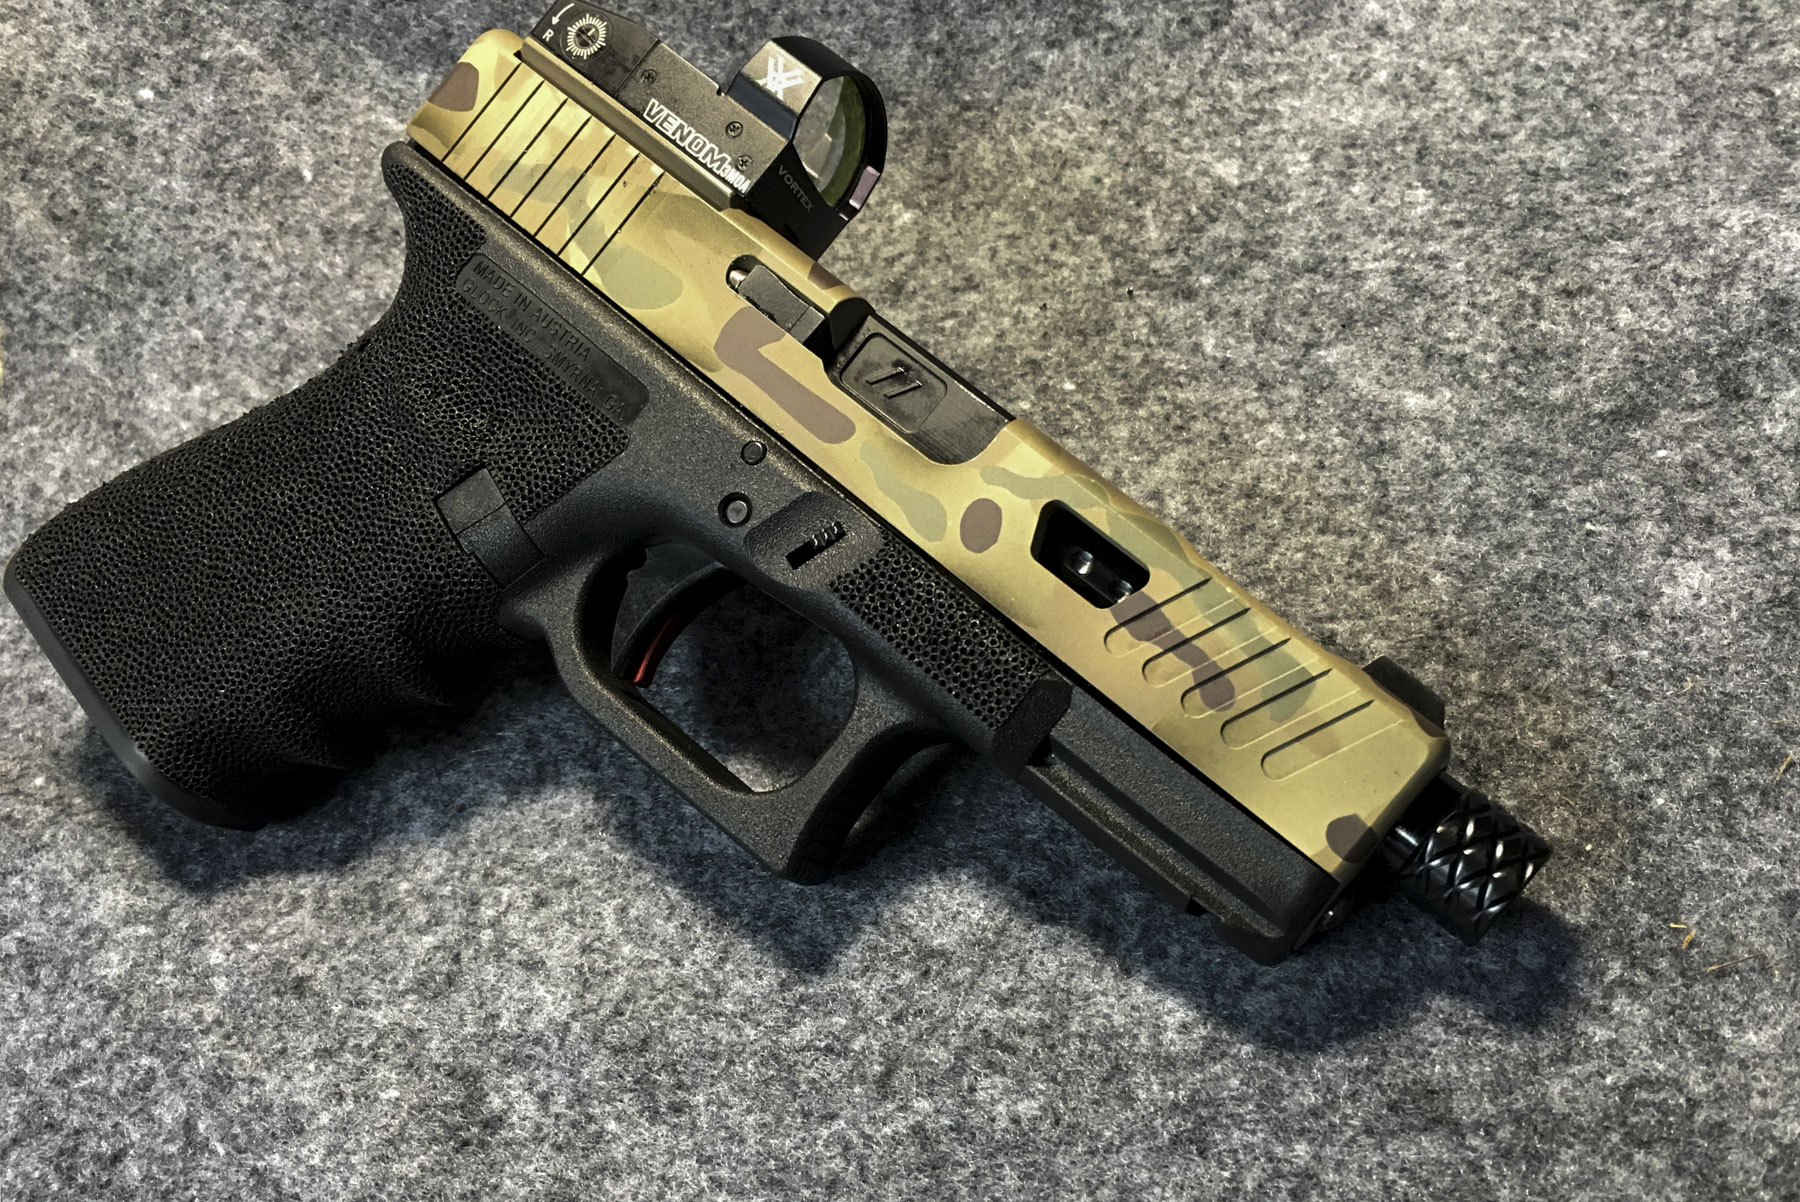 GLOCK 19 CUSTOM SLIDE MILLING, RMR CUT + MULTICAM CERAKOTE | Foley